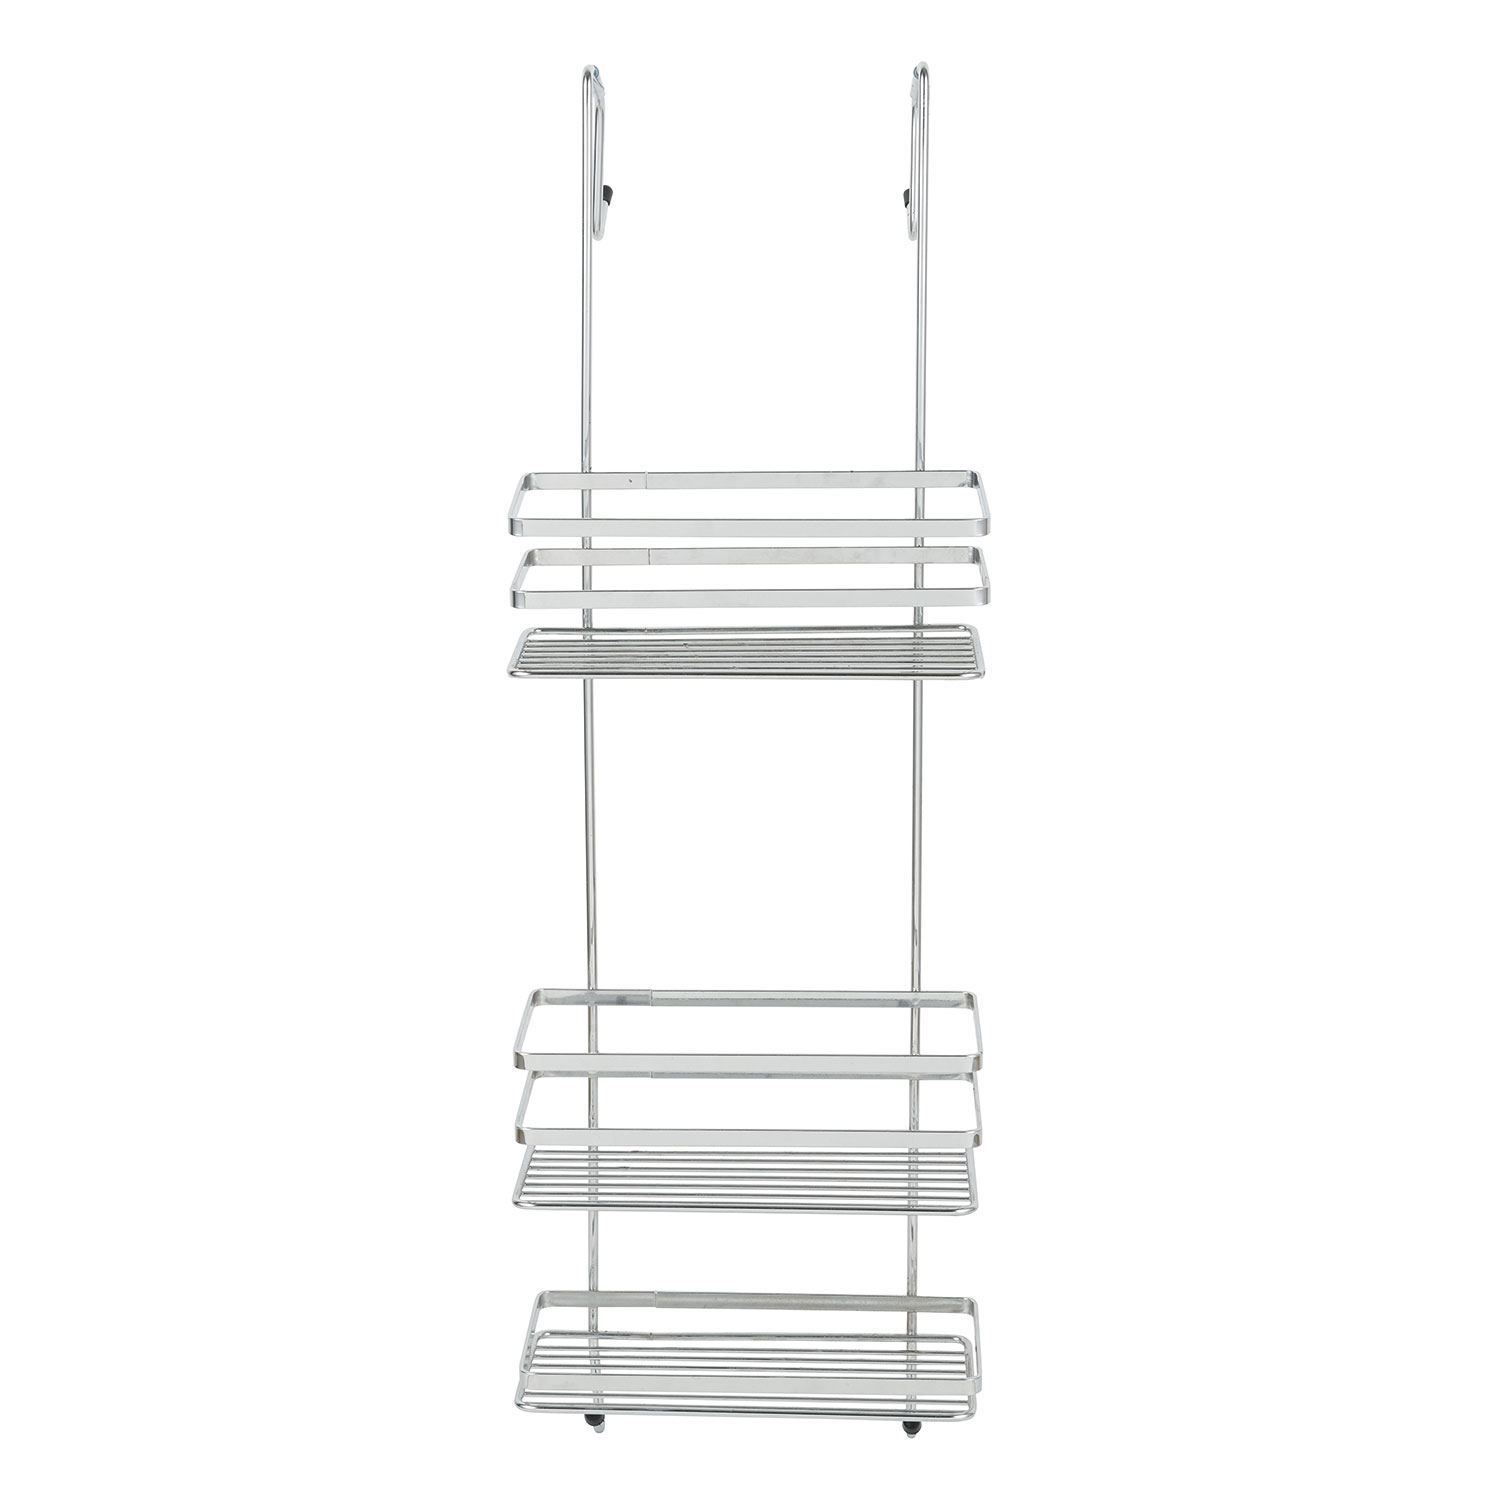 Details About 3 Tier Large Chrome Hanging Shower Caddy Bathroom Storage Rack Shelf Organiser within proportions 1500 X 1500